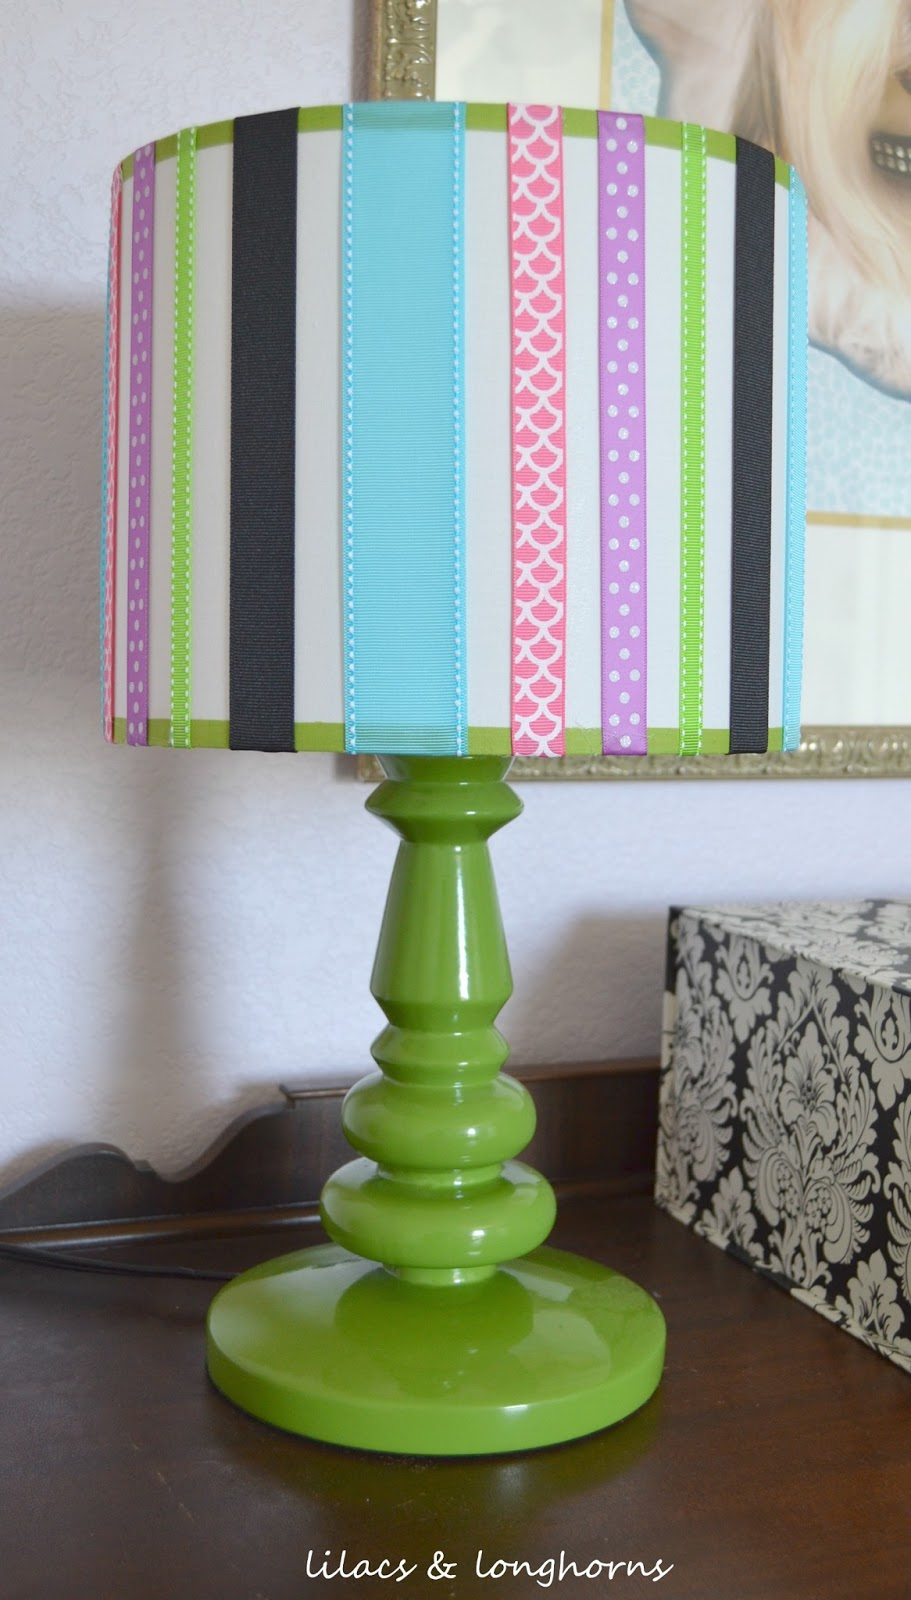 Diy ribbon lamp shade lilacs and longhornslilacs and longhorns the perfect accessory to her fun updated room aloadofball